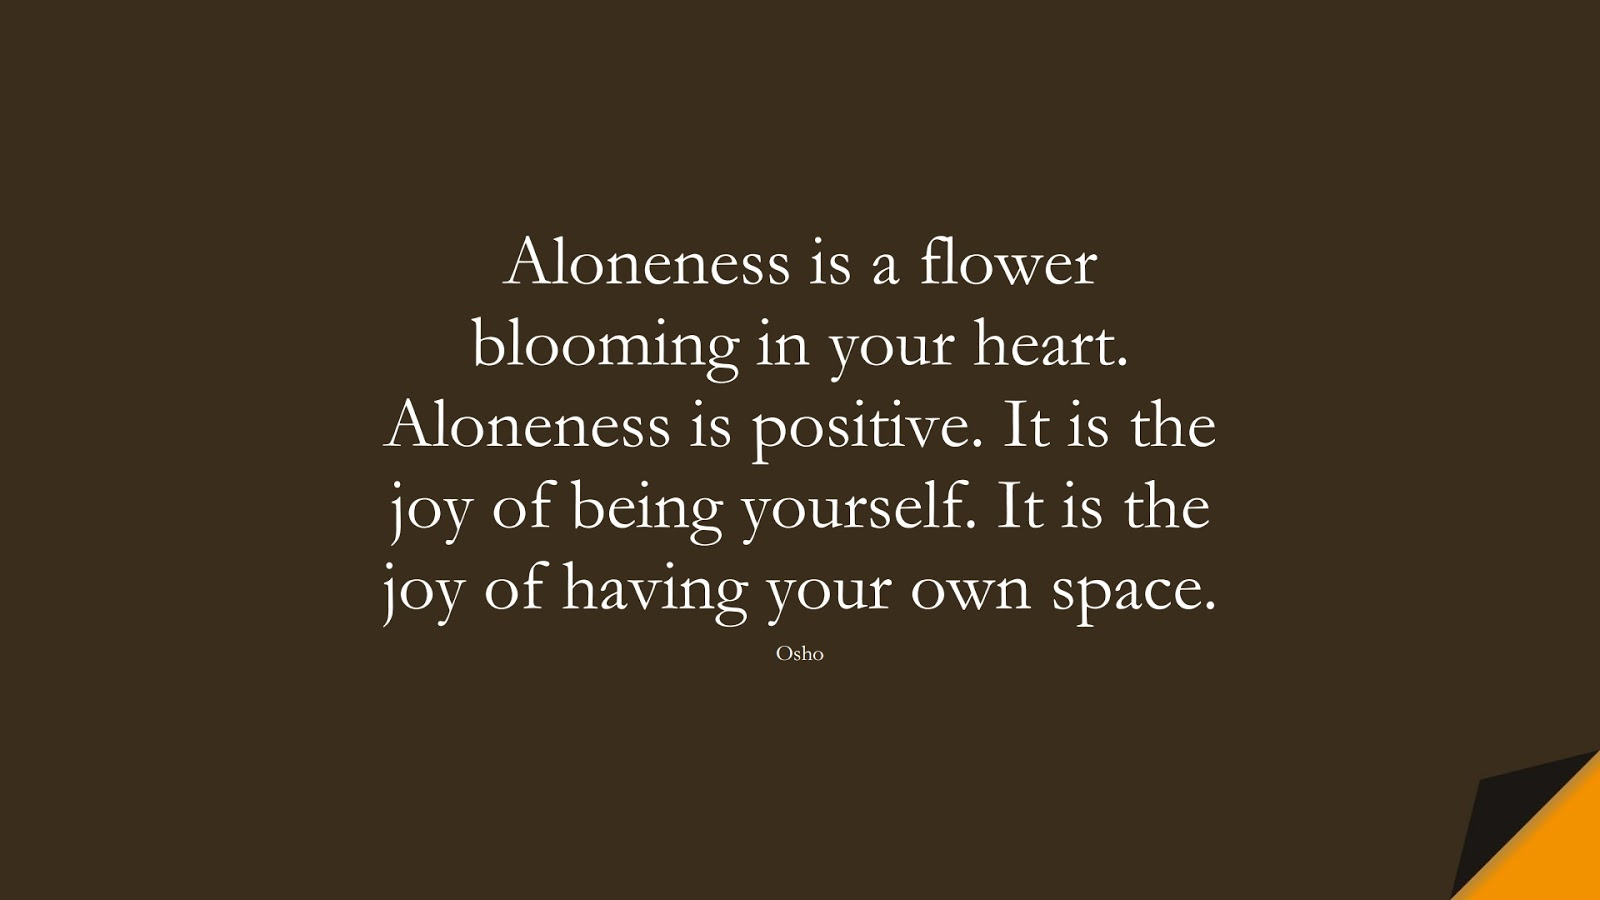 Aloneness is a flower blooming in your heart. Aloneness is positive. It is the joy of being yourself. It is the joy of having your own space. (Osho);  #BeYourselfQuotes